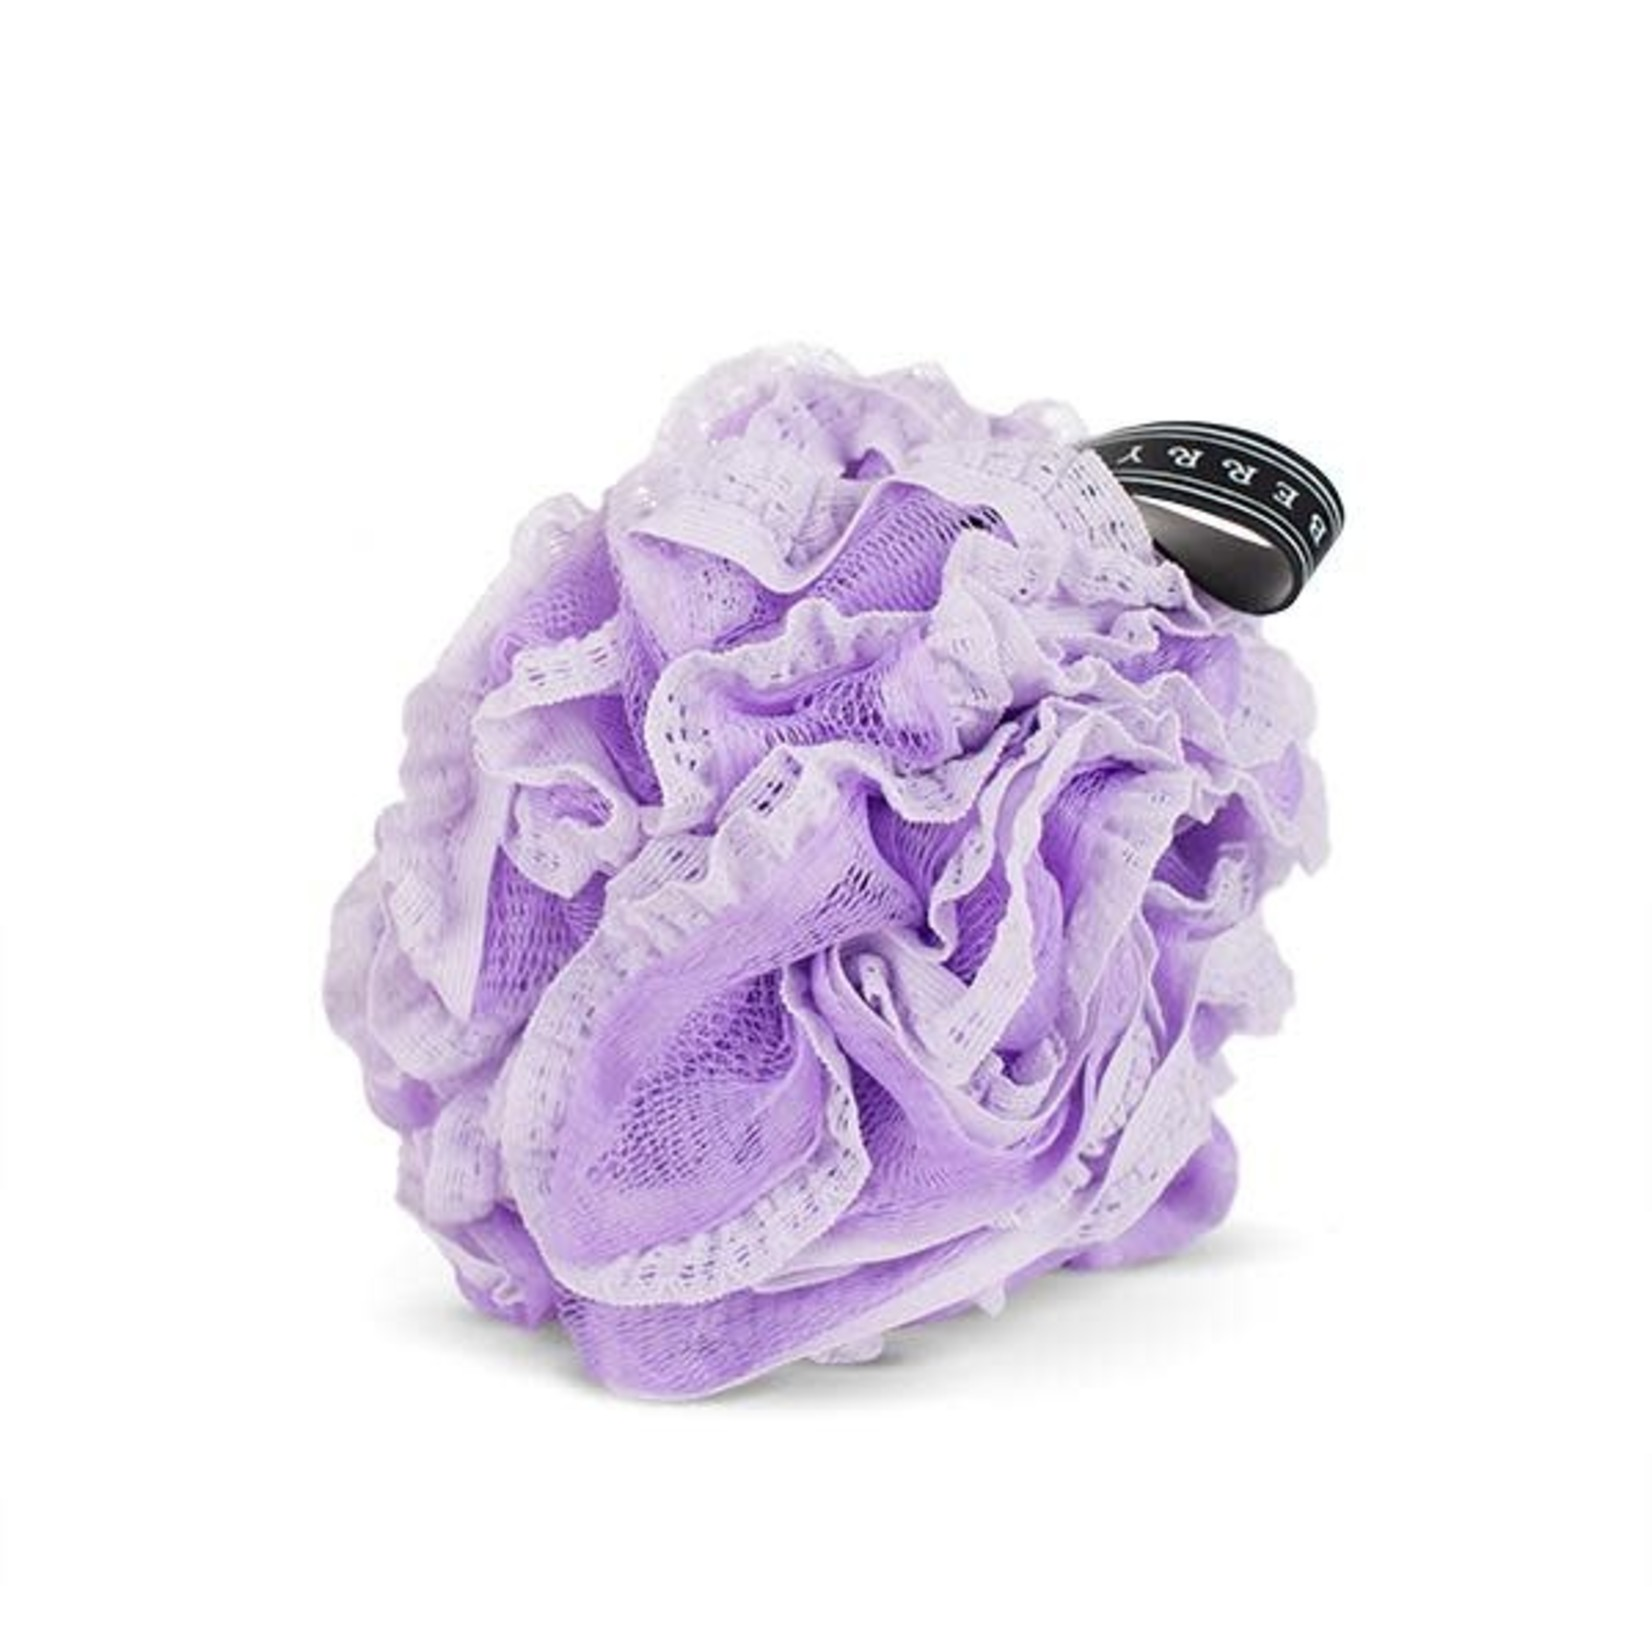 FinchBerry Soapery Lacy Loofah